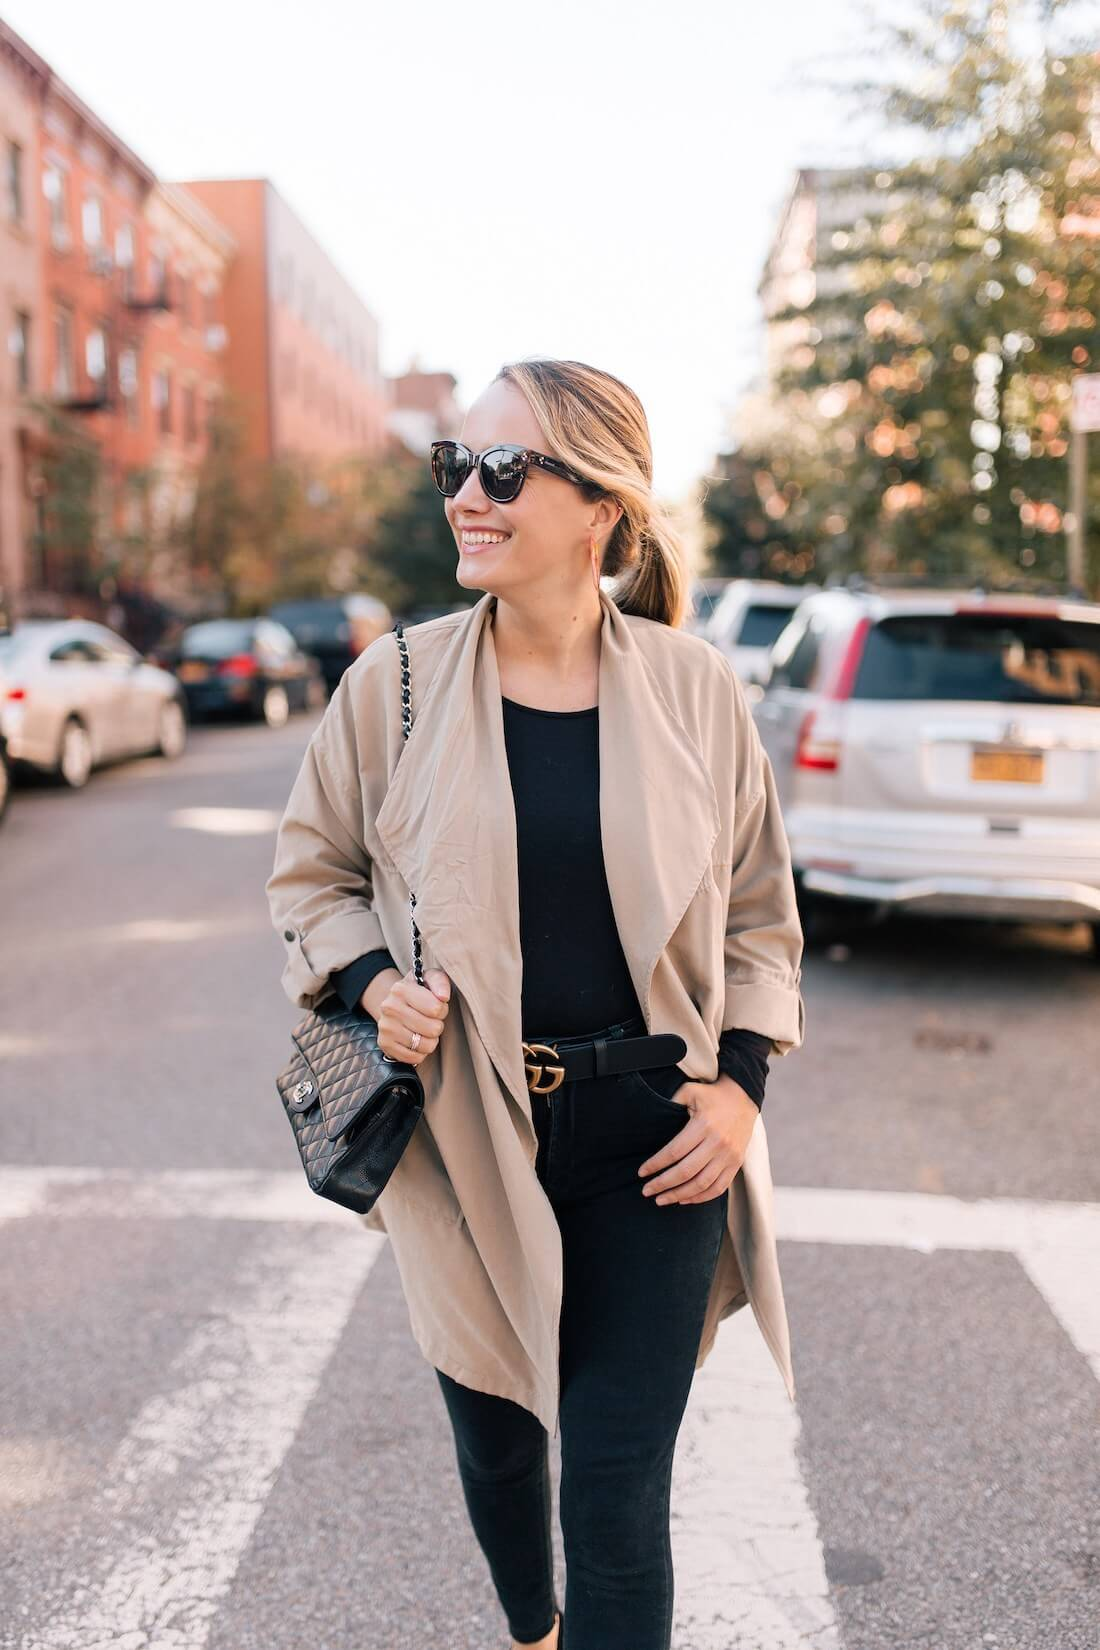 Best 15+ Fall Outfit Ideas For 2019 , Live Enhanced